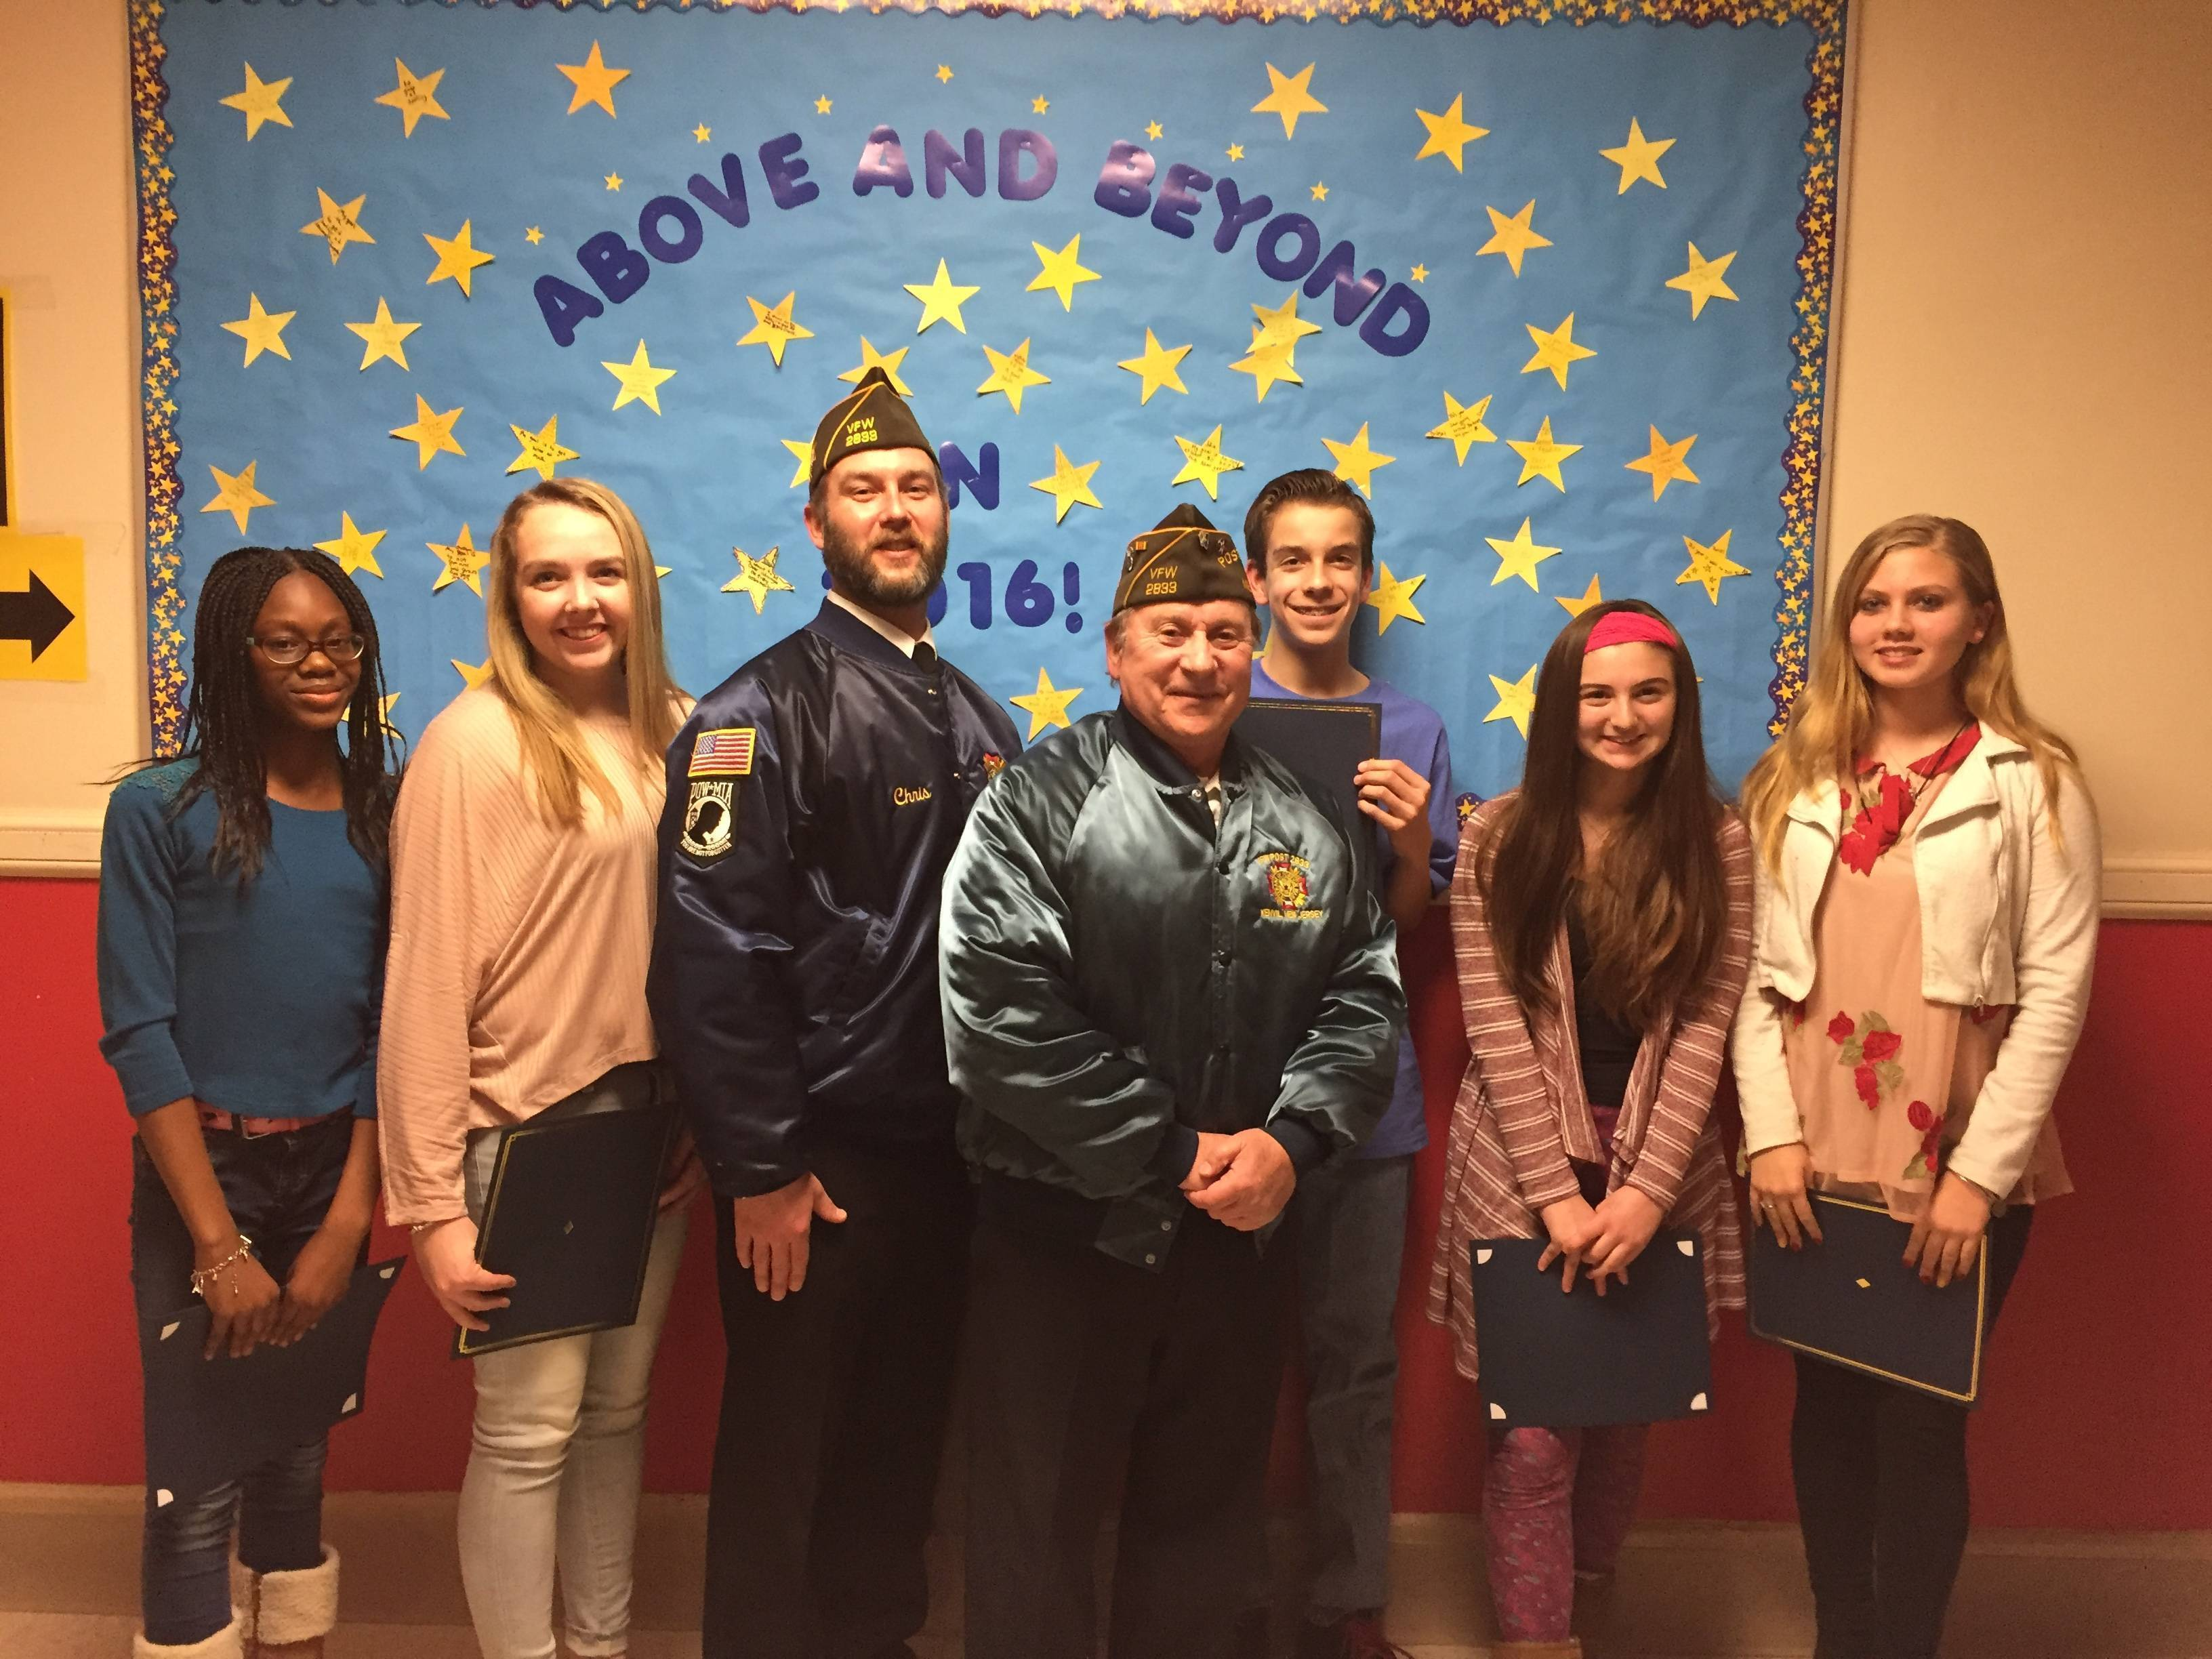 local vfw celebrates patriots pen and voice of democracy essay  ecfe20898339de291f8a 29003feb5dc3723b1b08 patriots pen voice of democracy winners jpg patriots pen voice of democracy